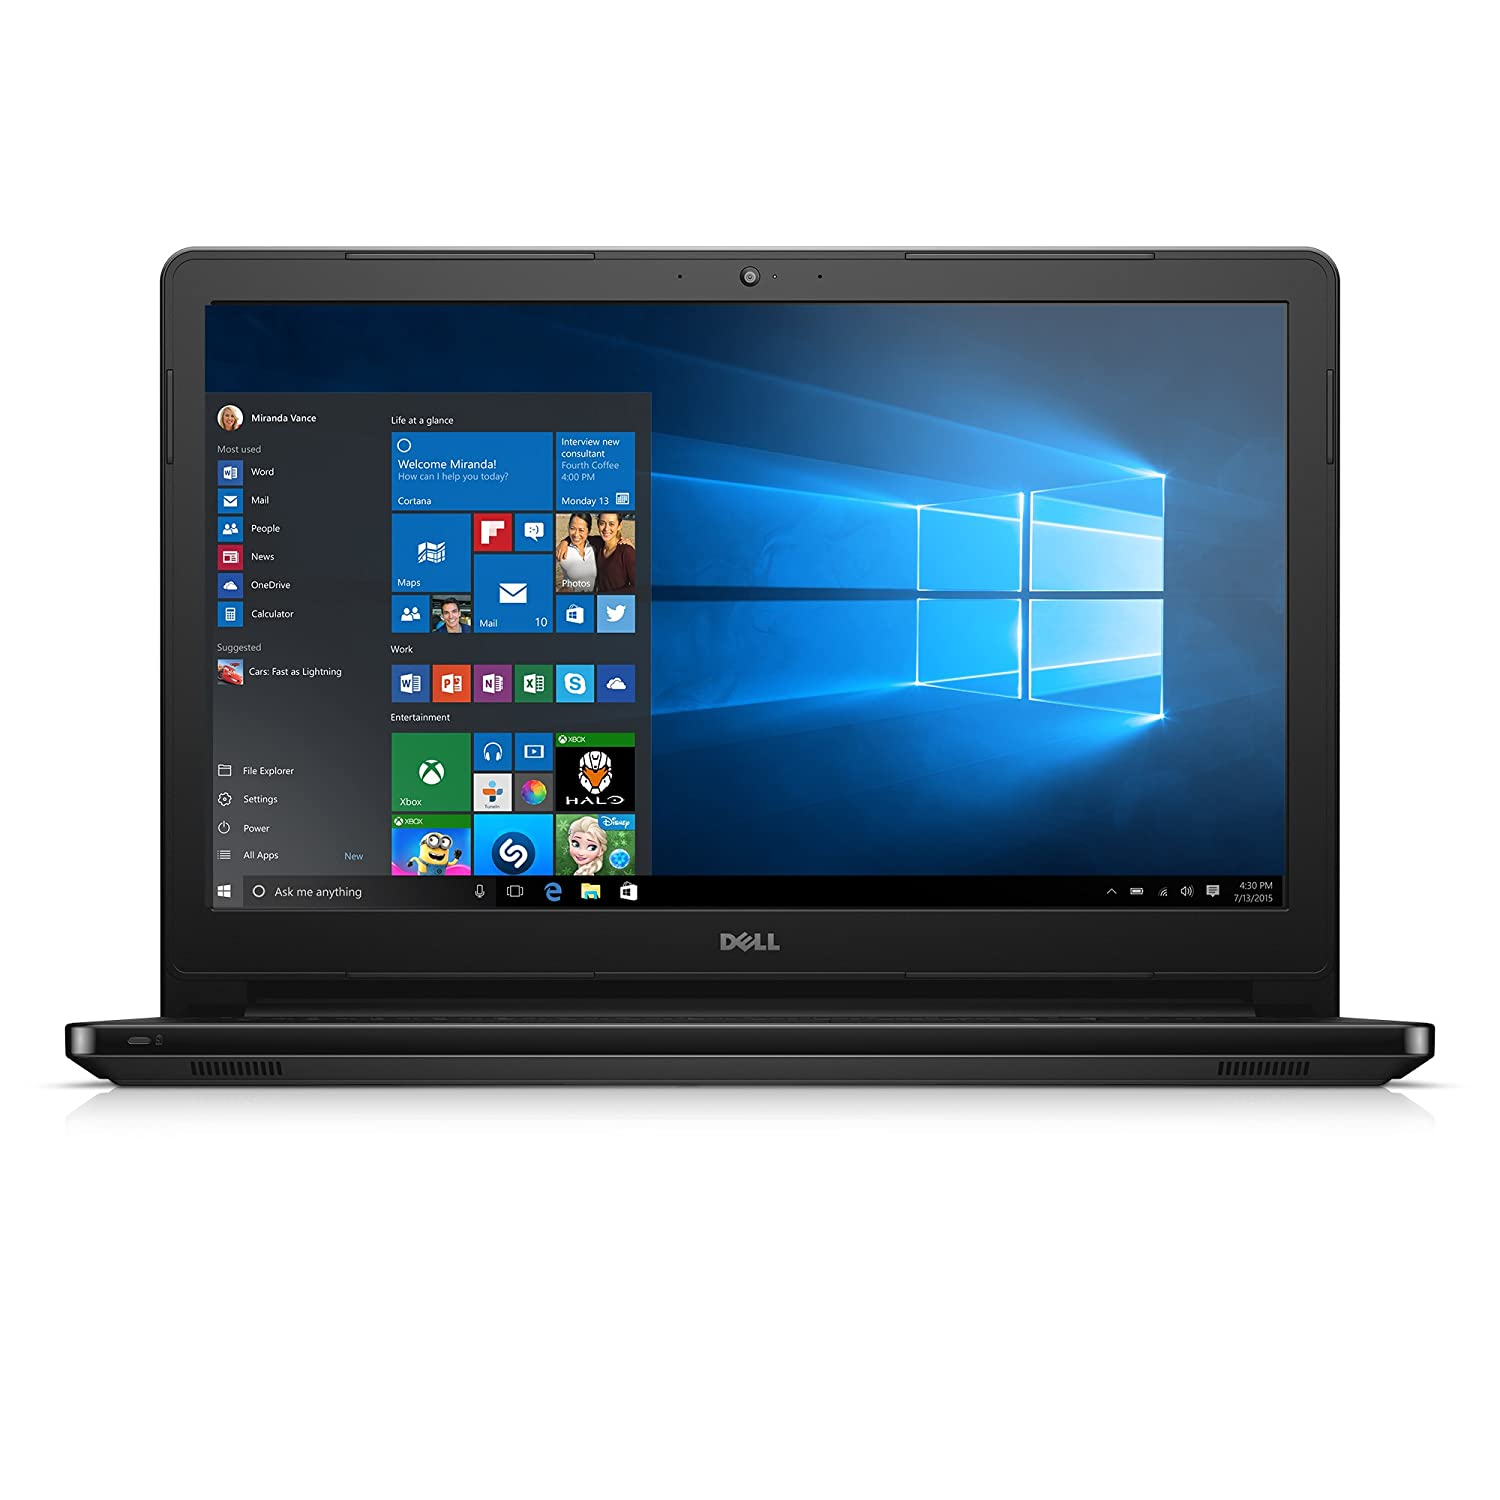 Amazon.com: Dell Inspiron i5555-1428BLK 15.6 Inch Touchscreen Laptop (AMD A8, 6 GB RAM, 1 TB HDD, Black Gloss): Computers & Accessories